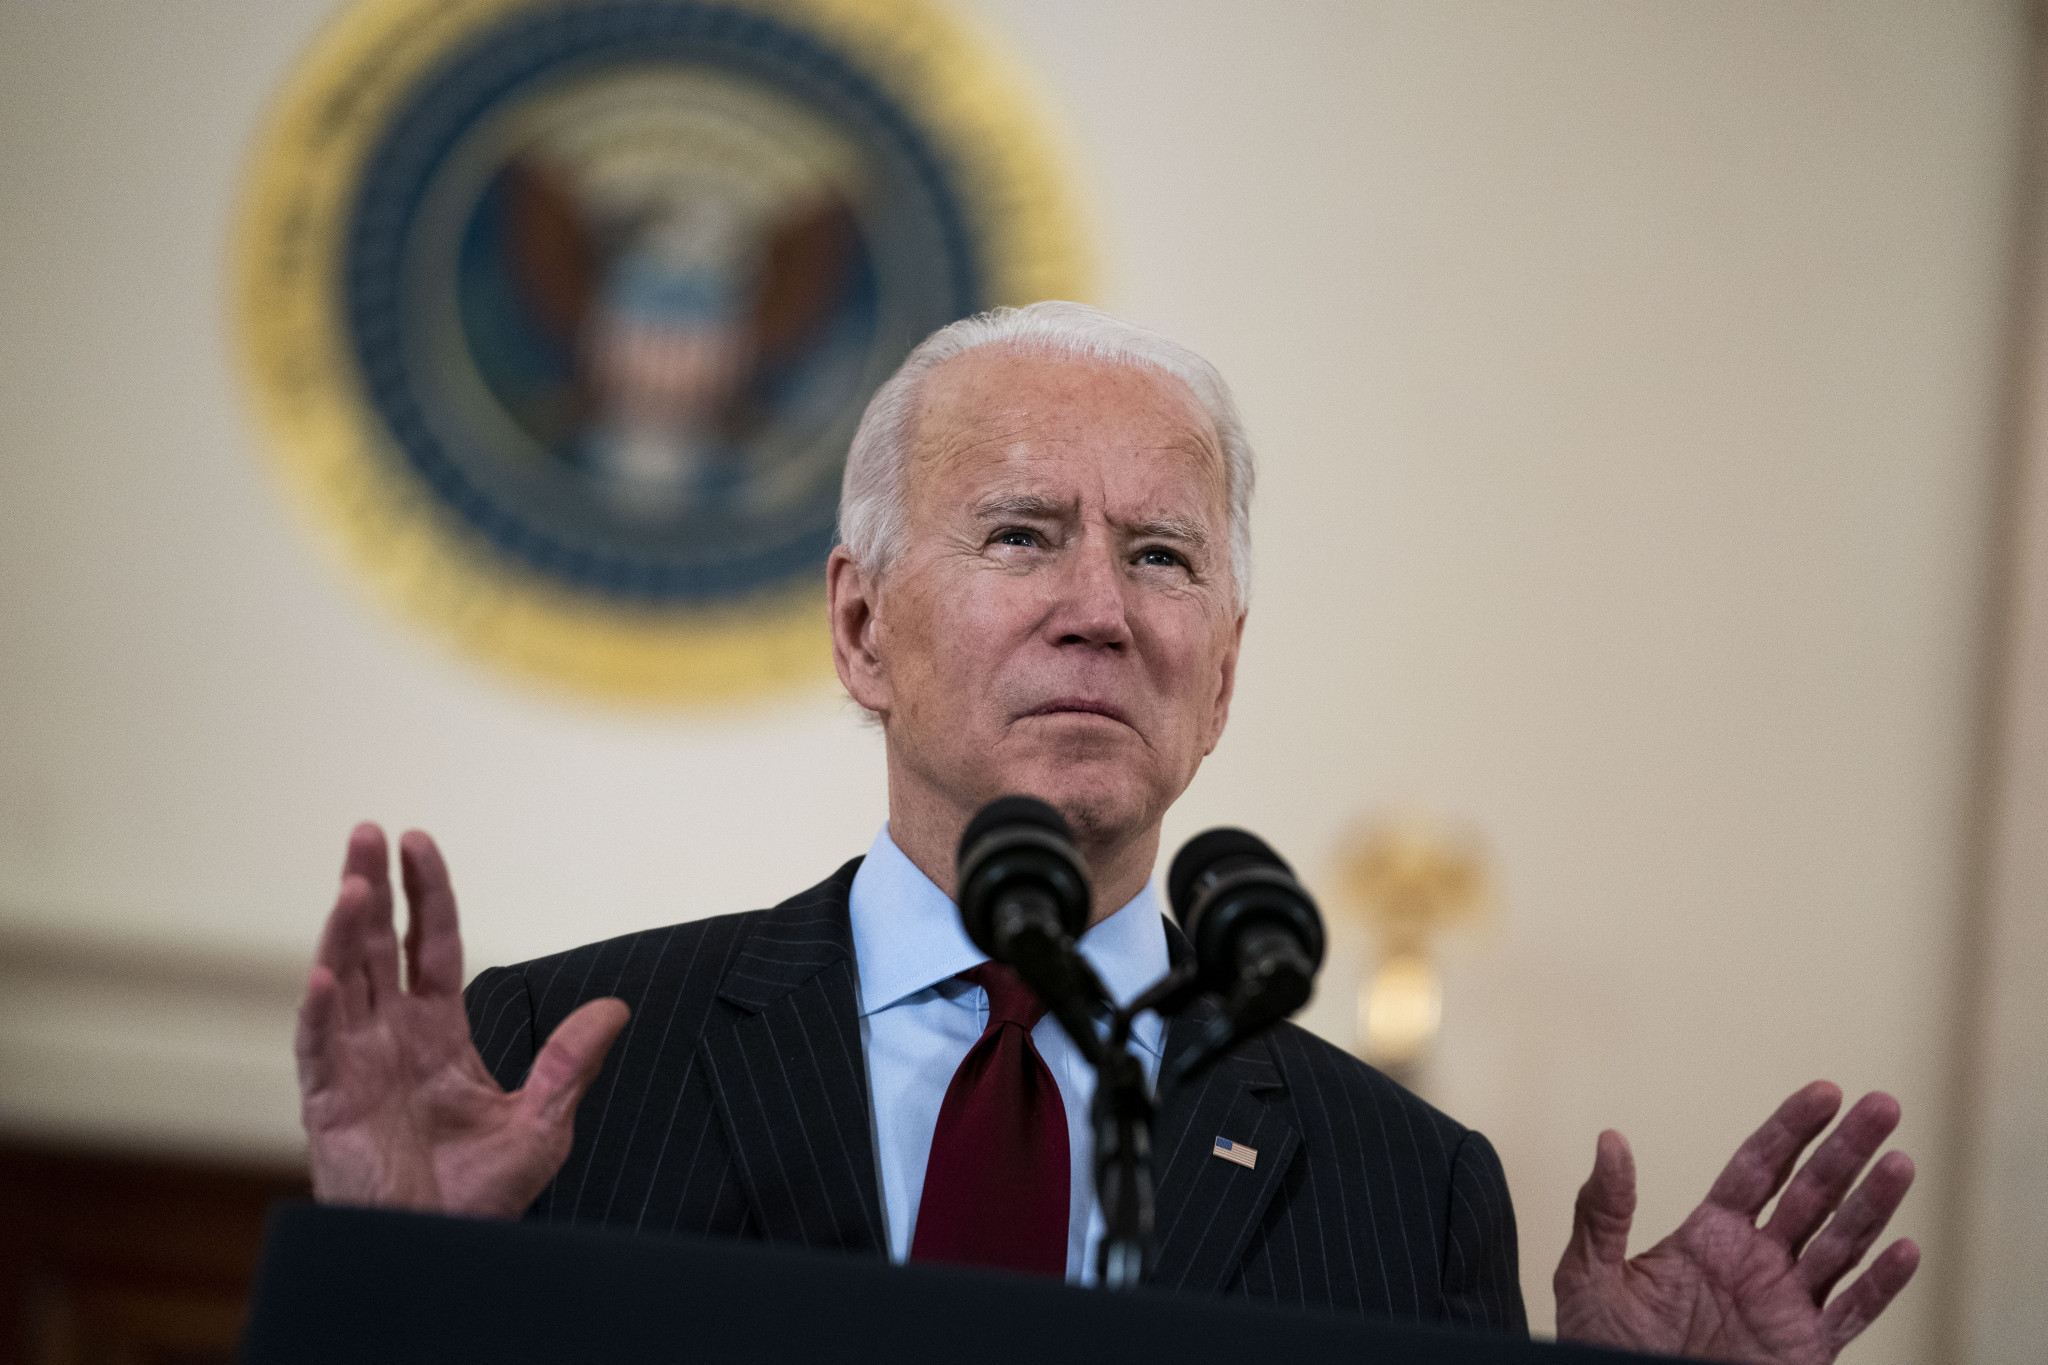 Joe Biden has reportedly discussed the treatment of Uighur Muslims with Chinese President Xi Jinping since officially becoming US President last month ©Getty Images